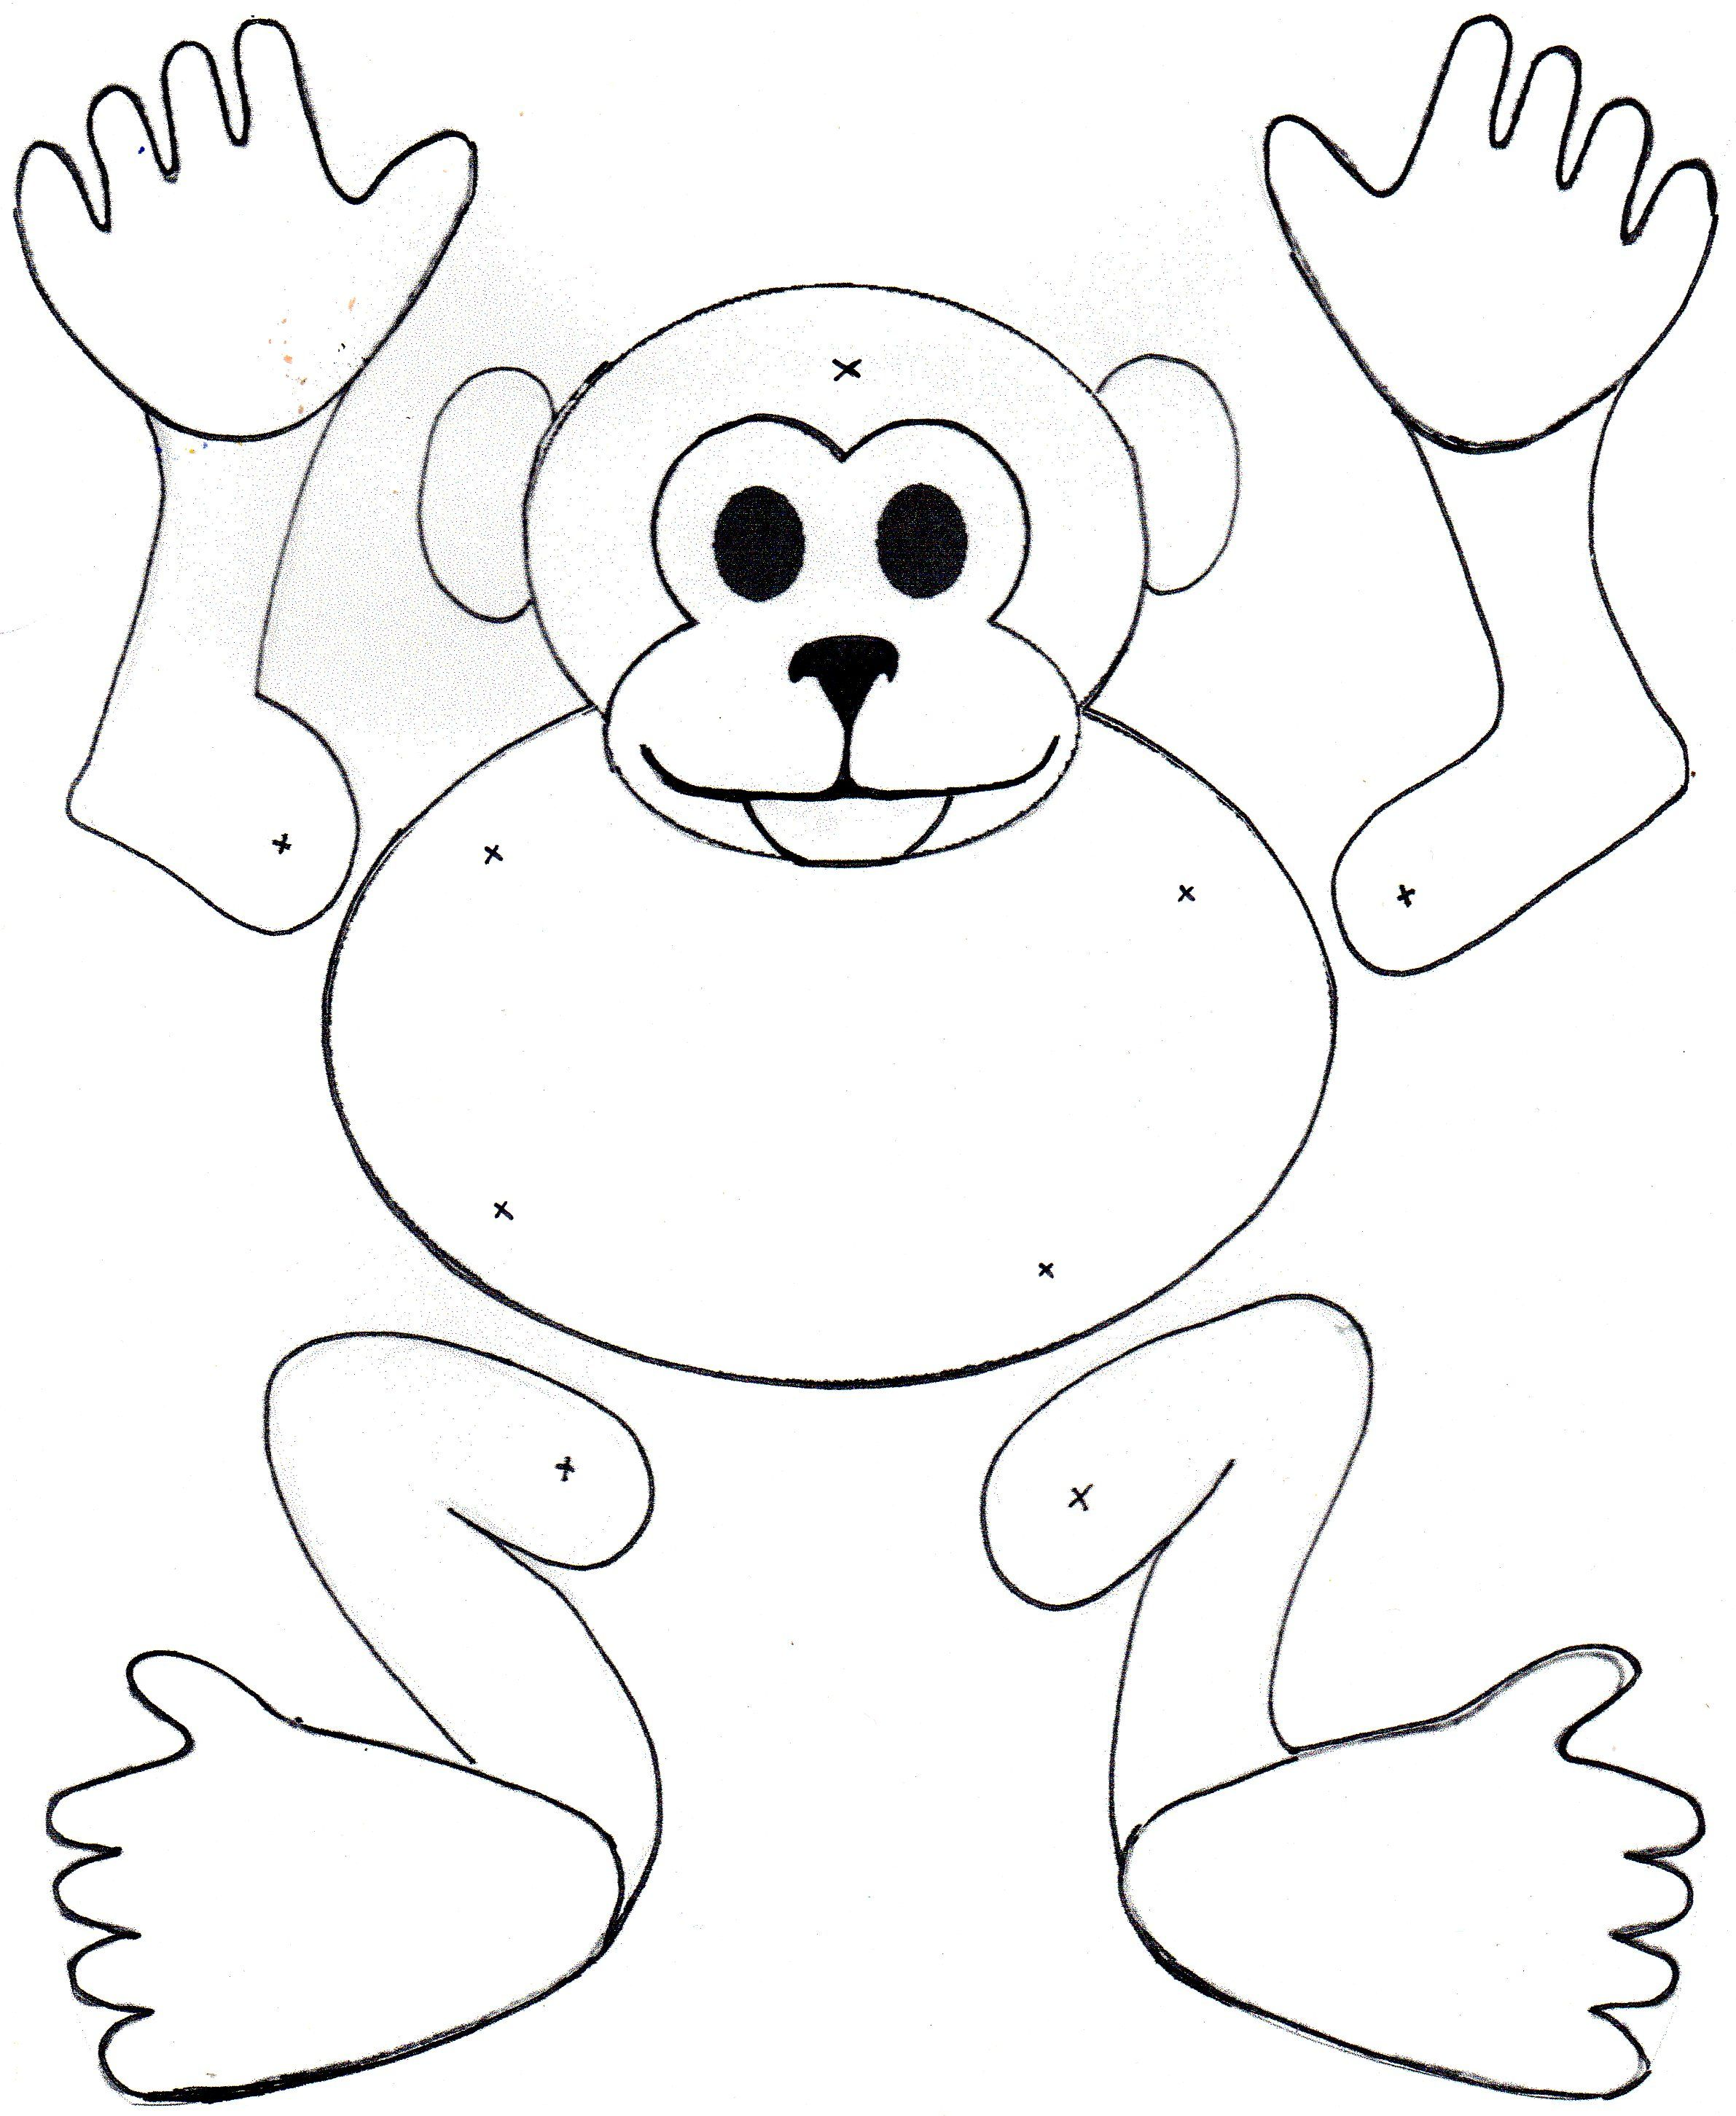 Mm monkey puppet. Colour, Cut and secure joints with split